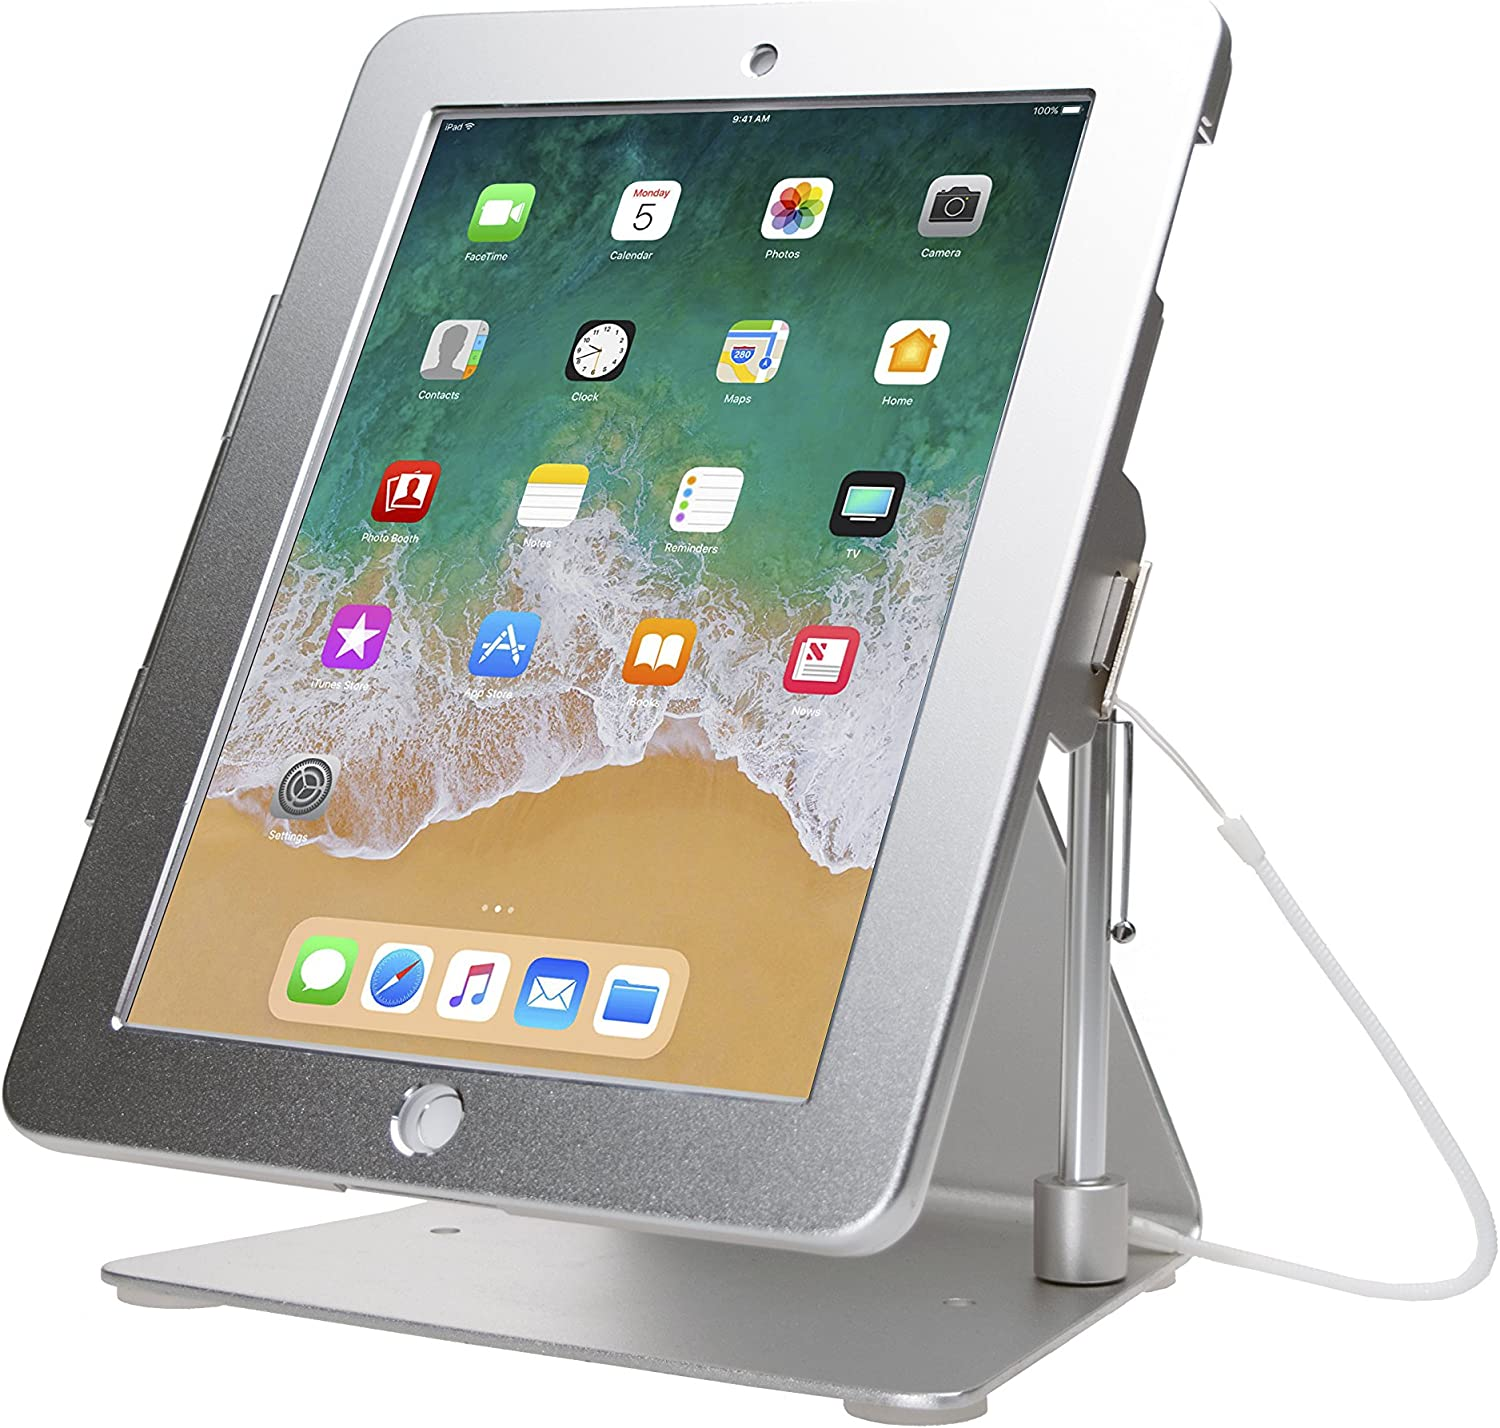 CTA Digital: Desktop Anti-Theft iPad Stand for with iPad Air, iPad Pro 9.7, iPad Gen. 6 (2018), iPad Gen. 5 (2017), iPad (Gen. 2-4); Compatible with Headphone Jack Credit Card Readers, Silver